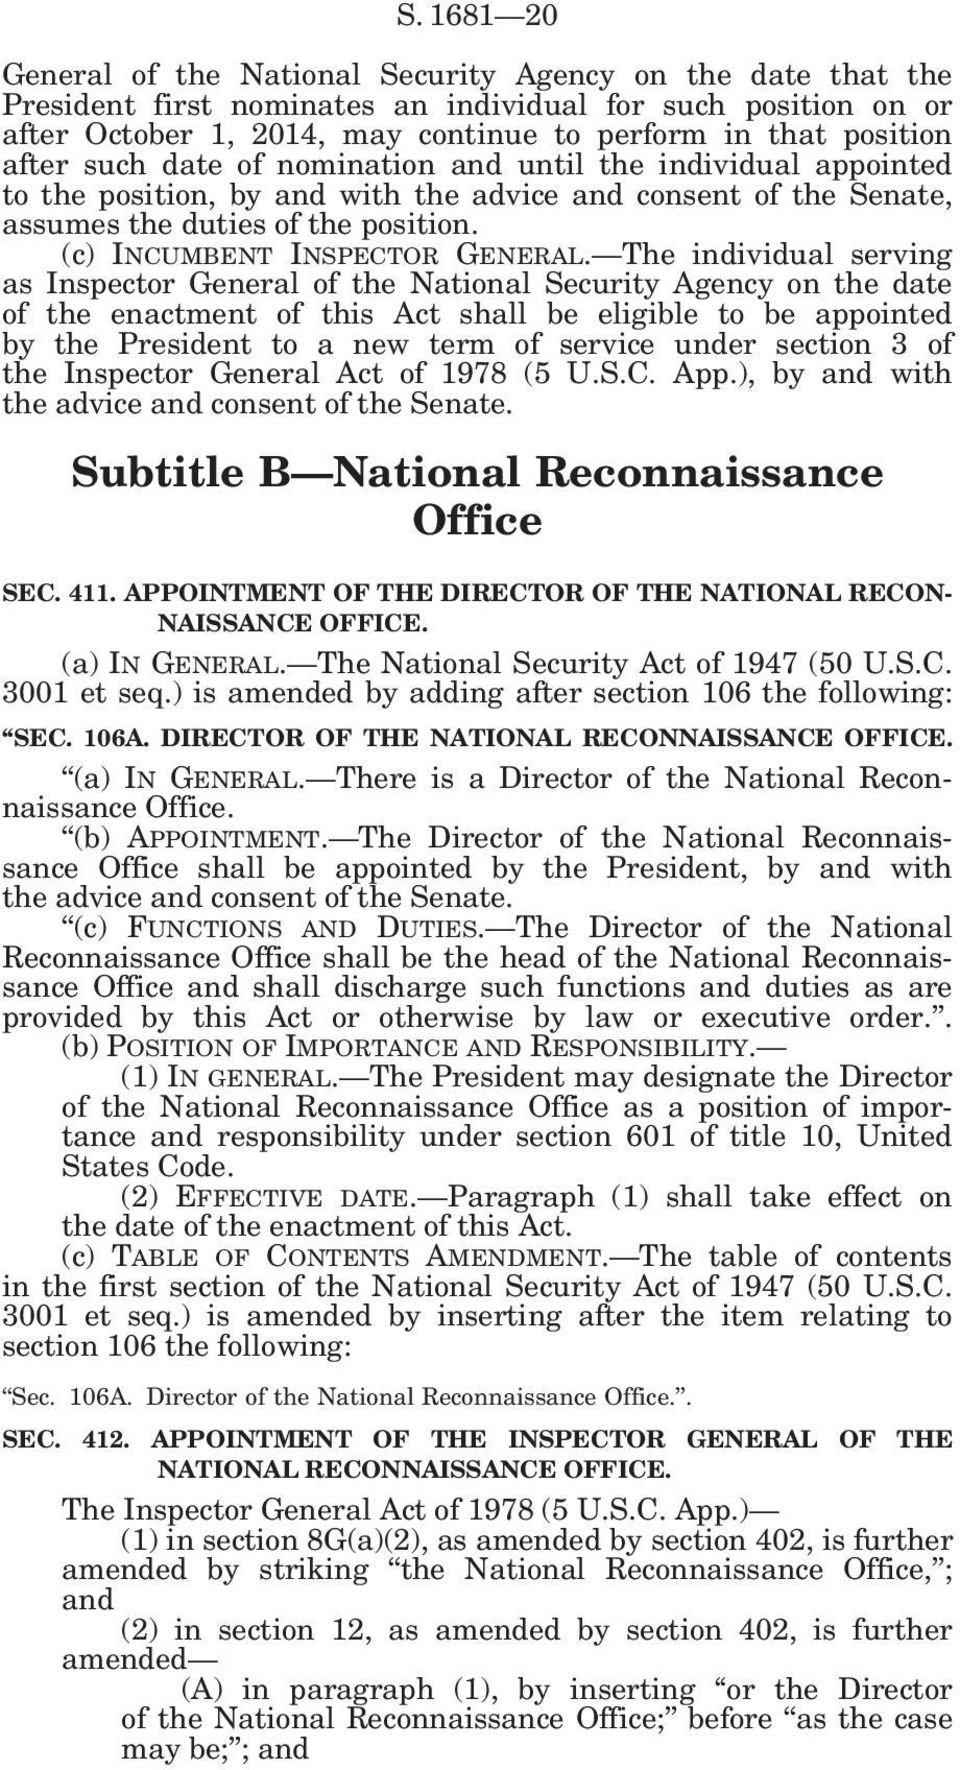 The individual serving as Inspector General of the National Security Agency on the date of the enactment of this Act shall be eligible to be appointed by the President to a new term of service under